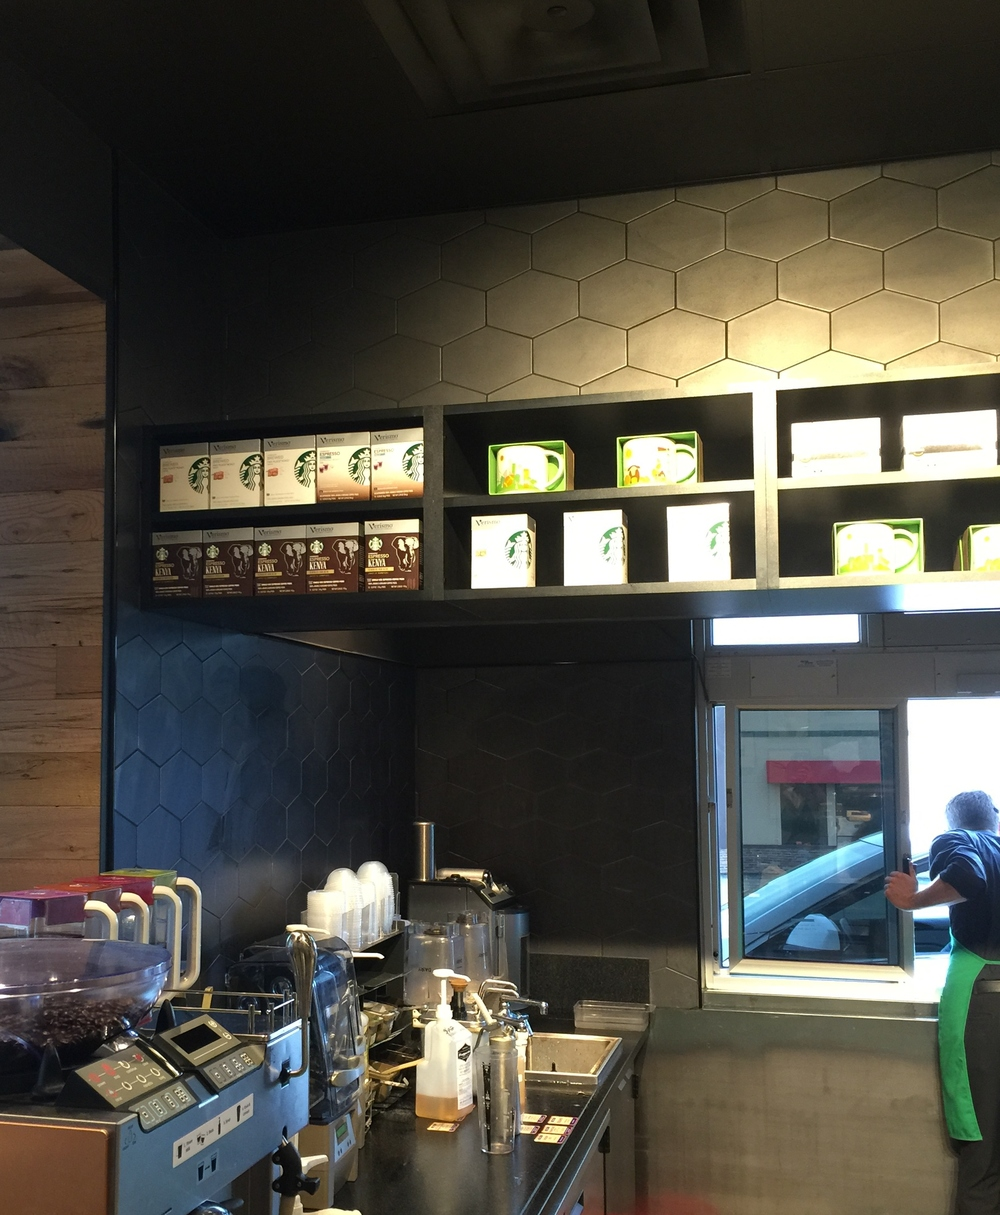 Hex or beehive tiles at Starbucks